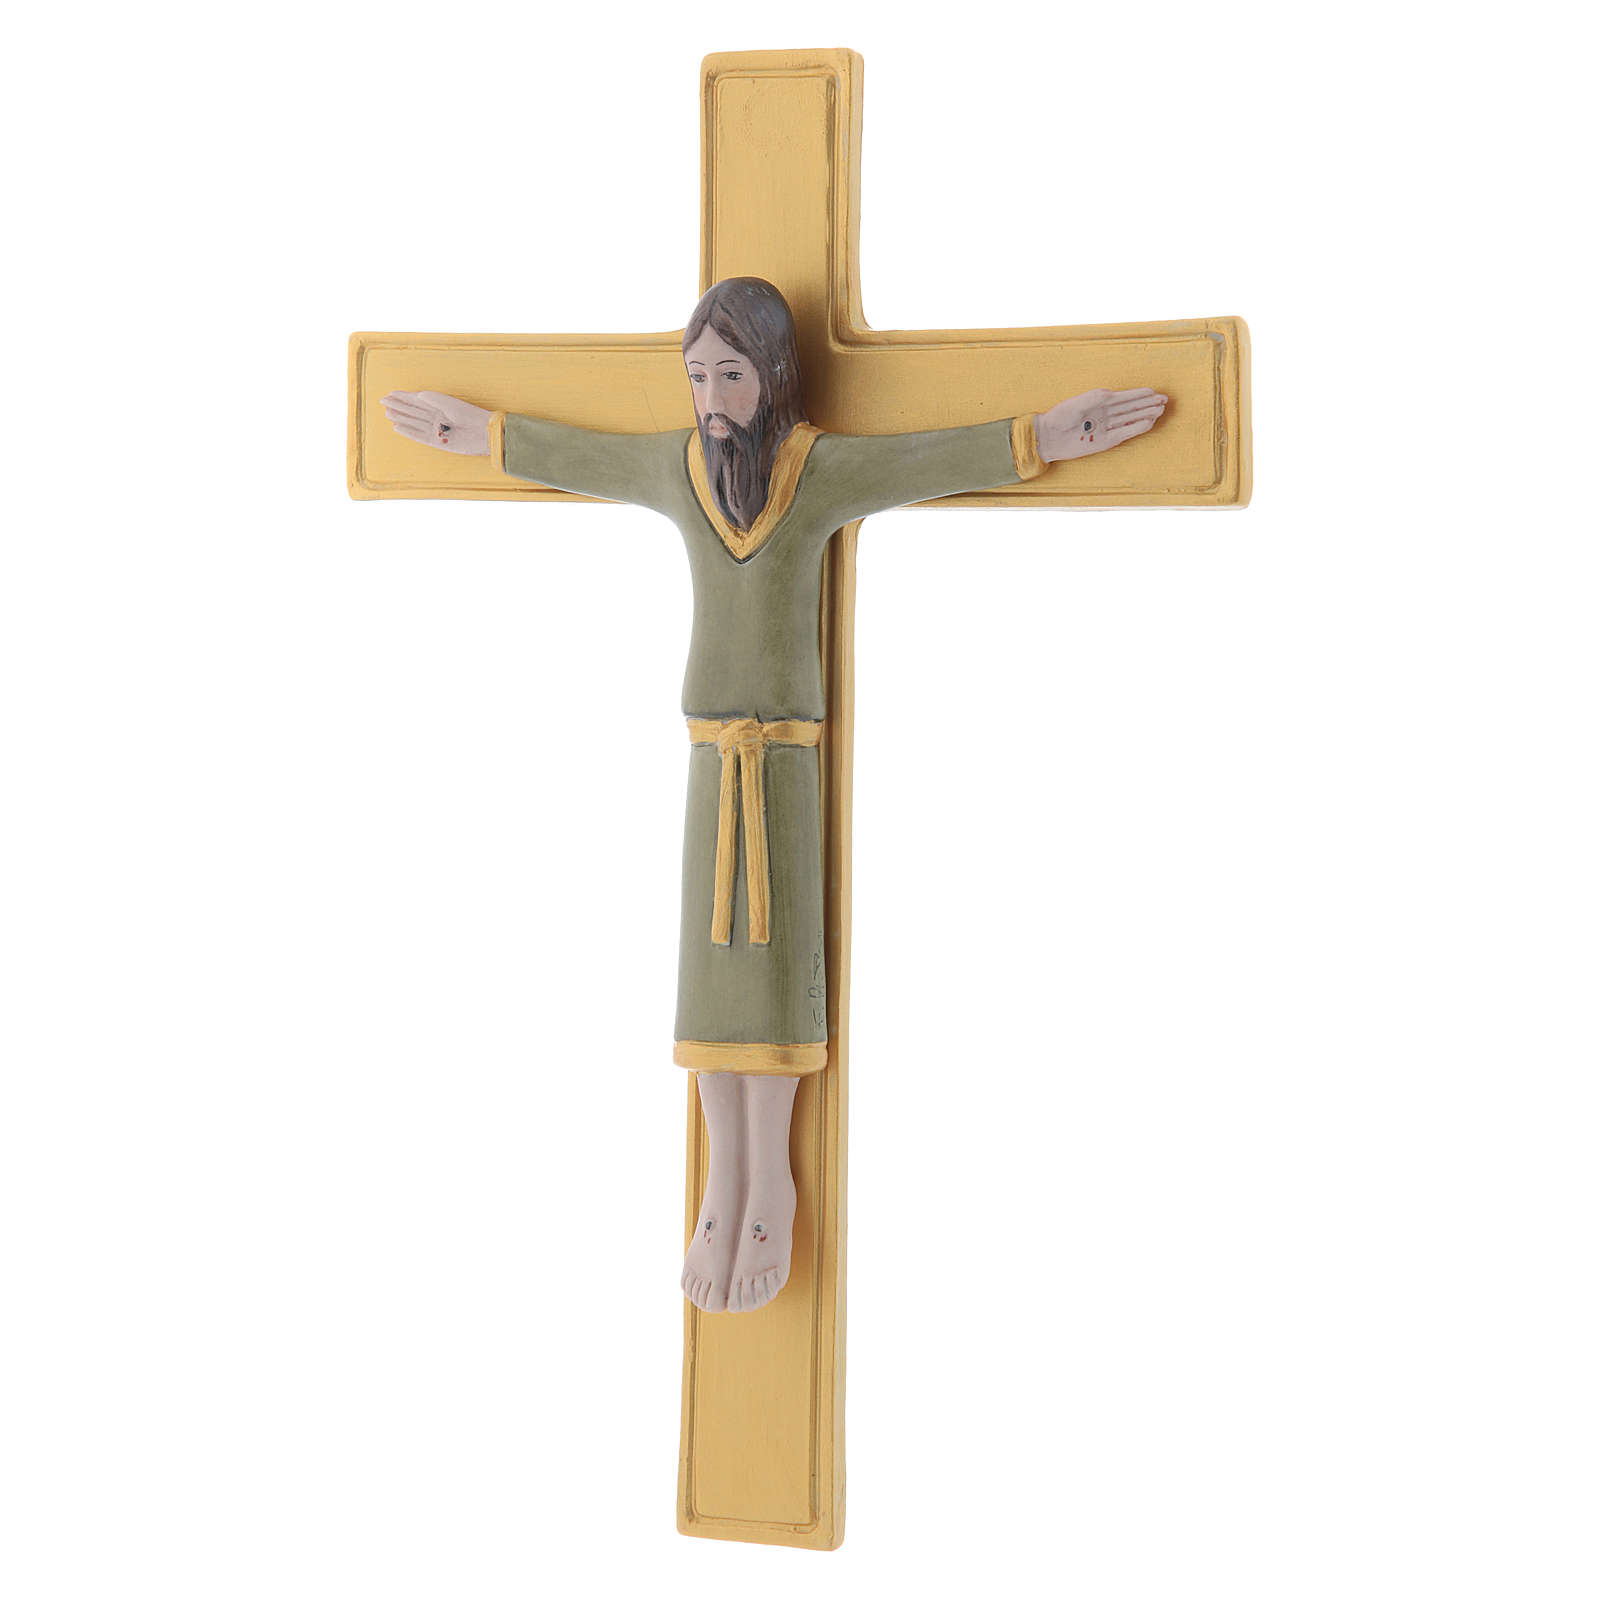 Pinton bas-relief crucifix with Jesus Christ dressed in green tunic and golden cross 25X17 cm 4